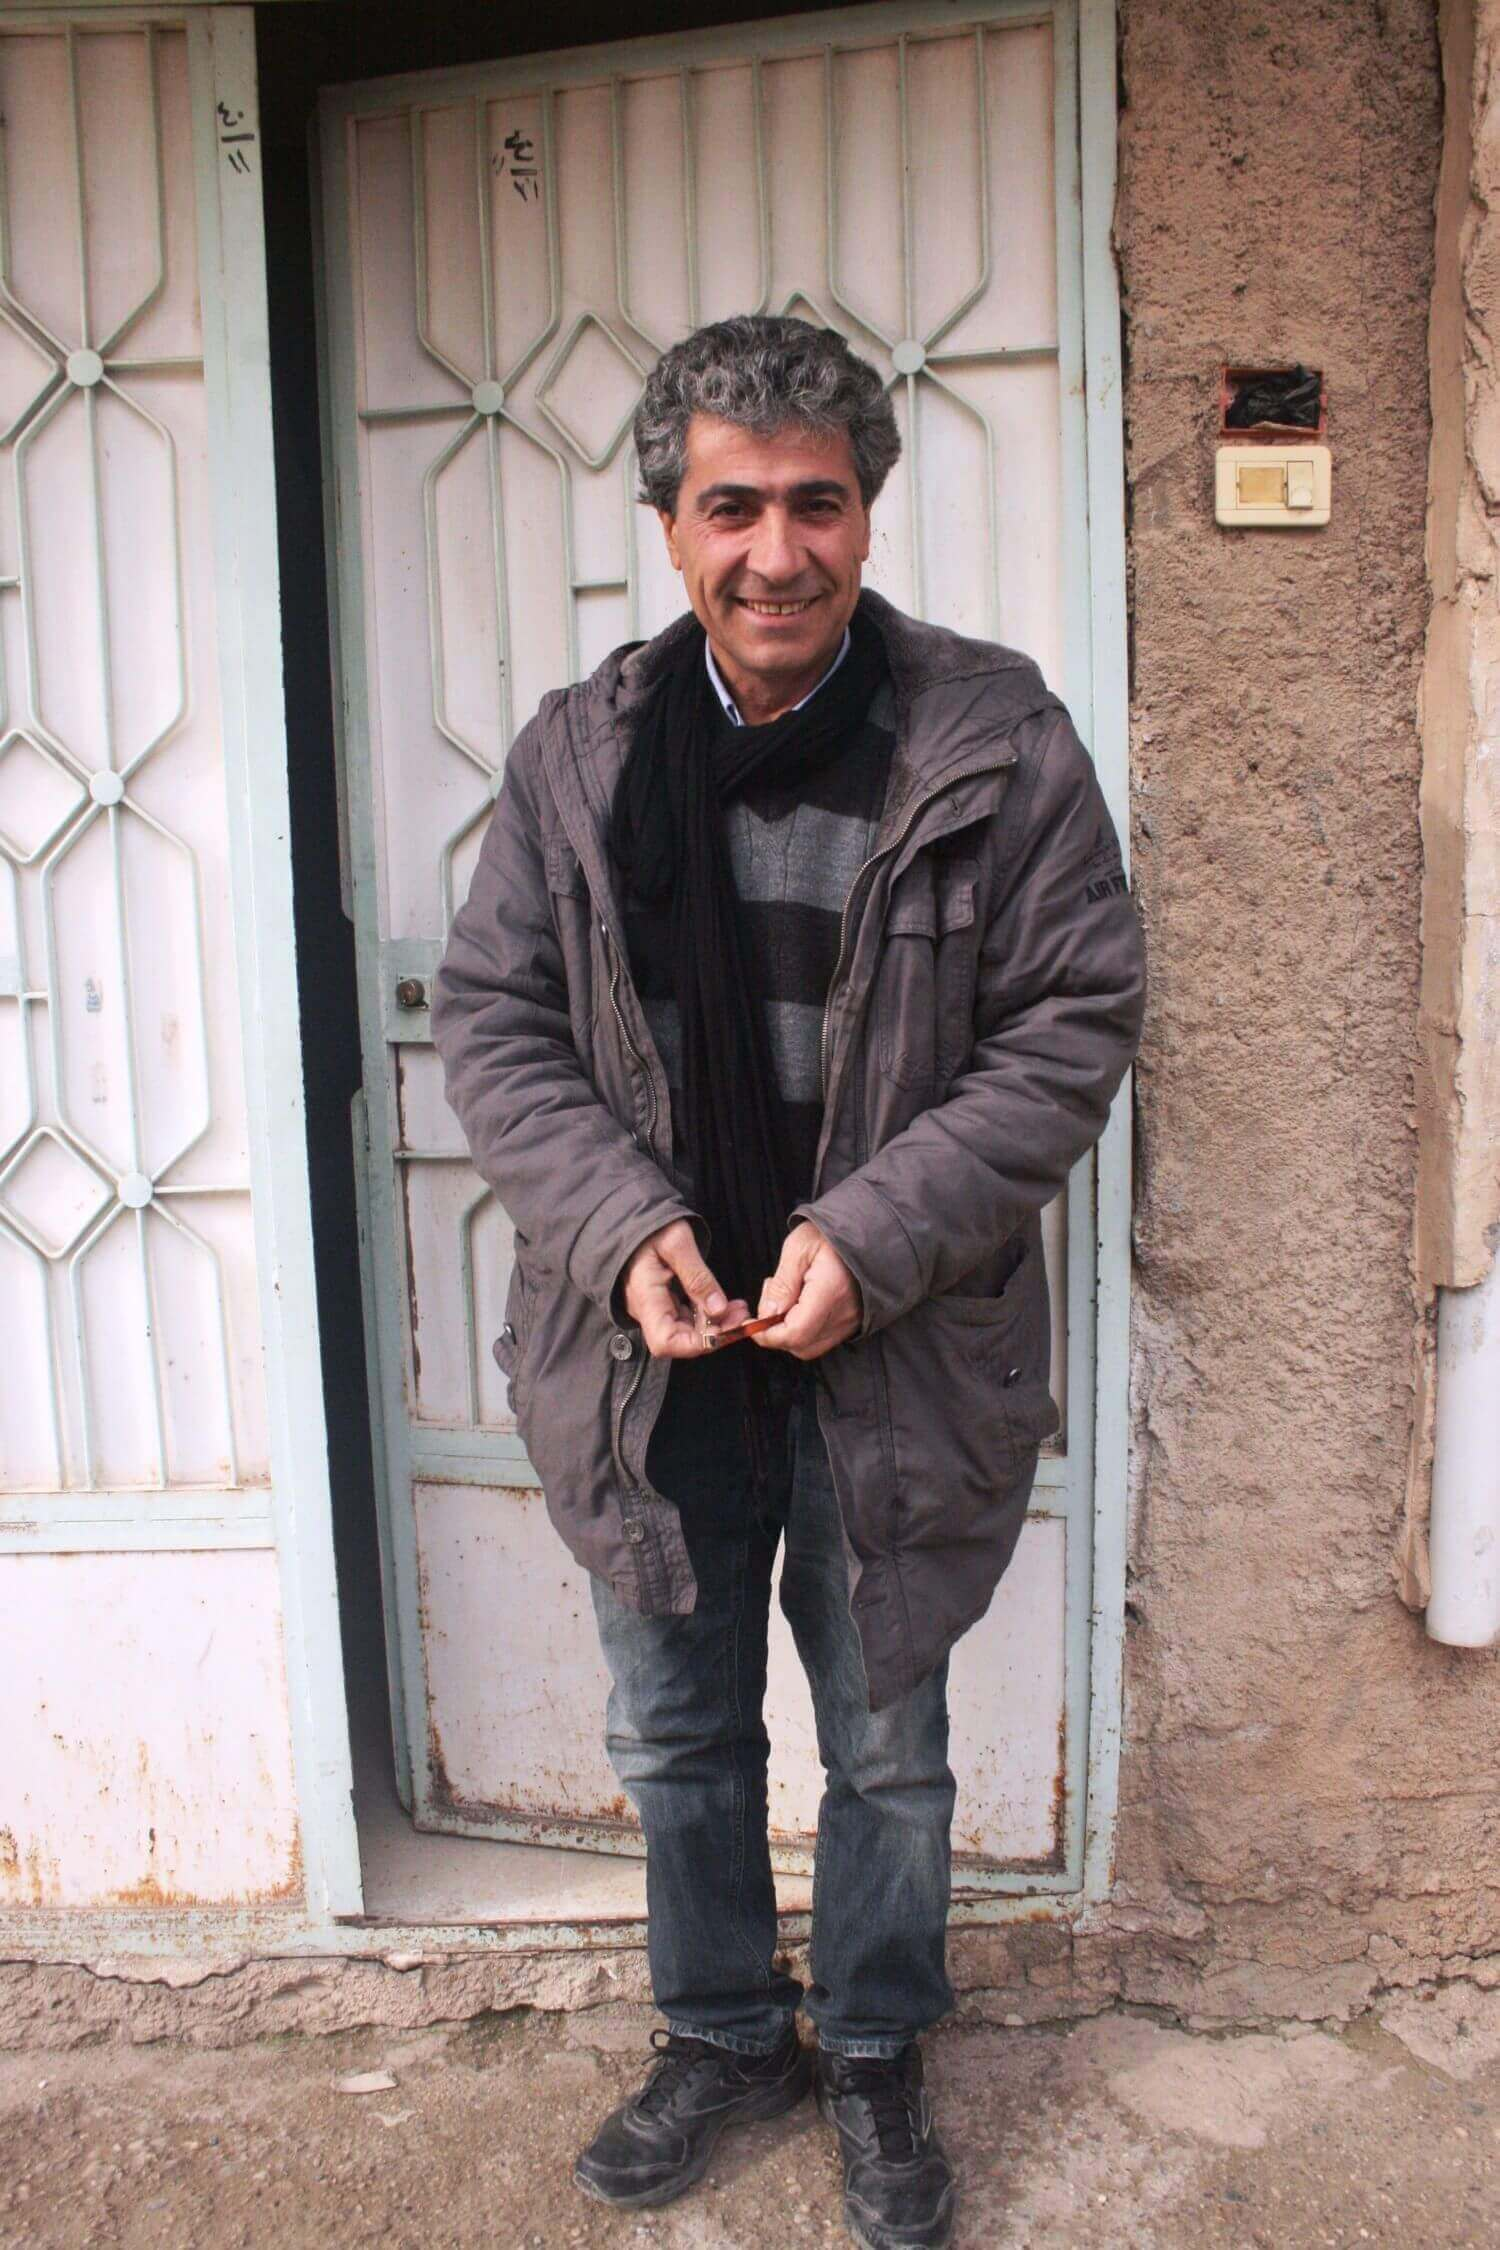 Kurdish poet Taha Xelîl in front of his house Qamishli, February 22, 2014